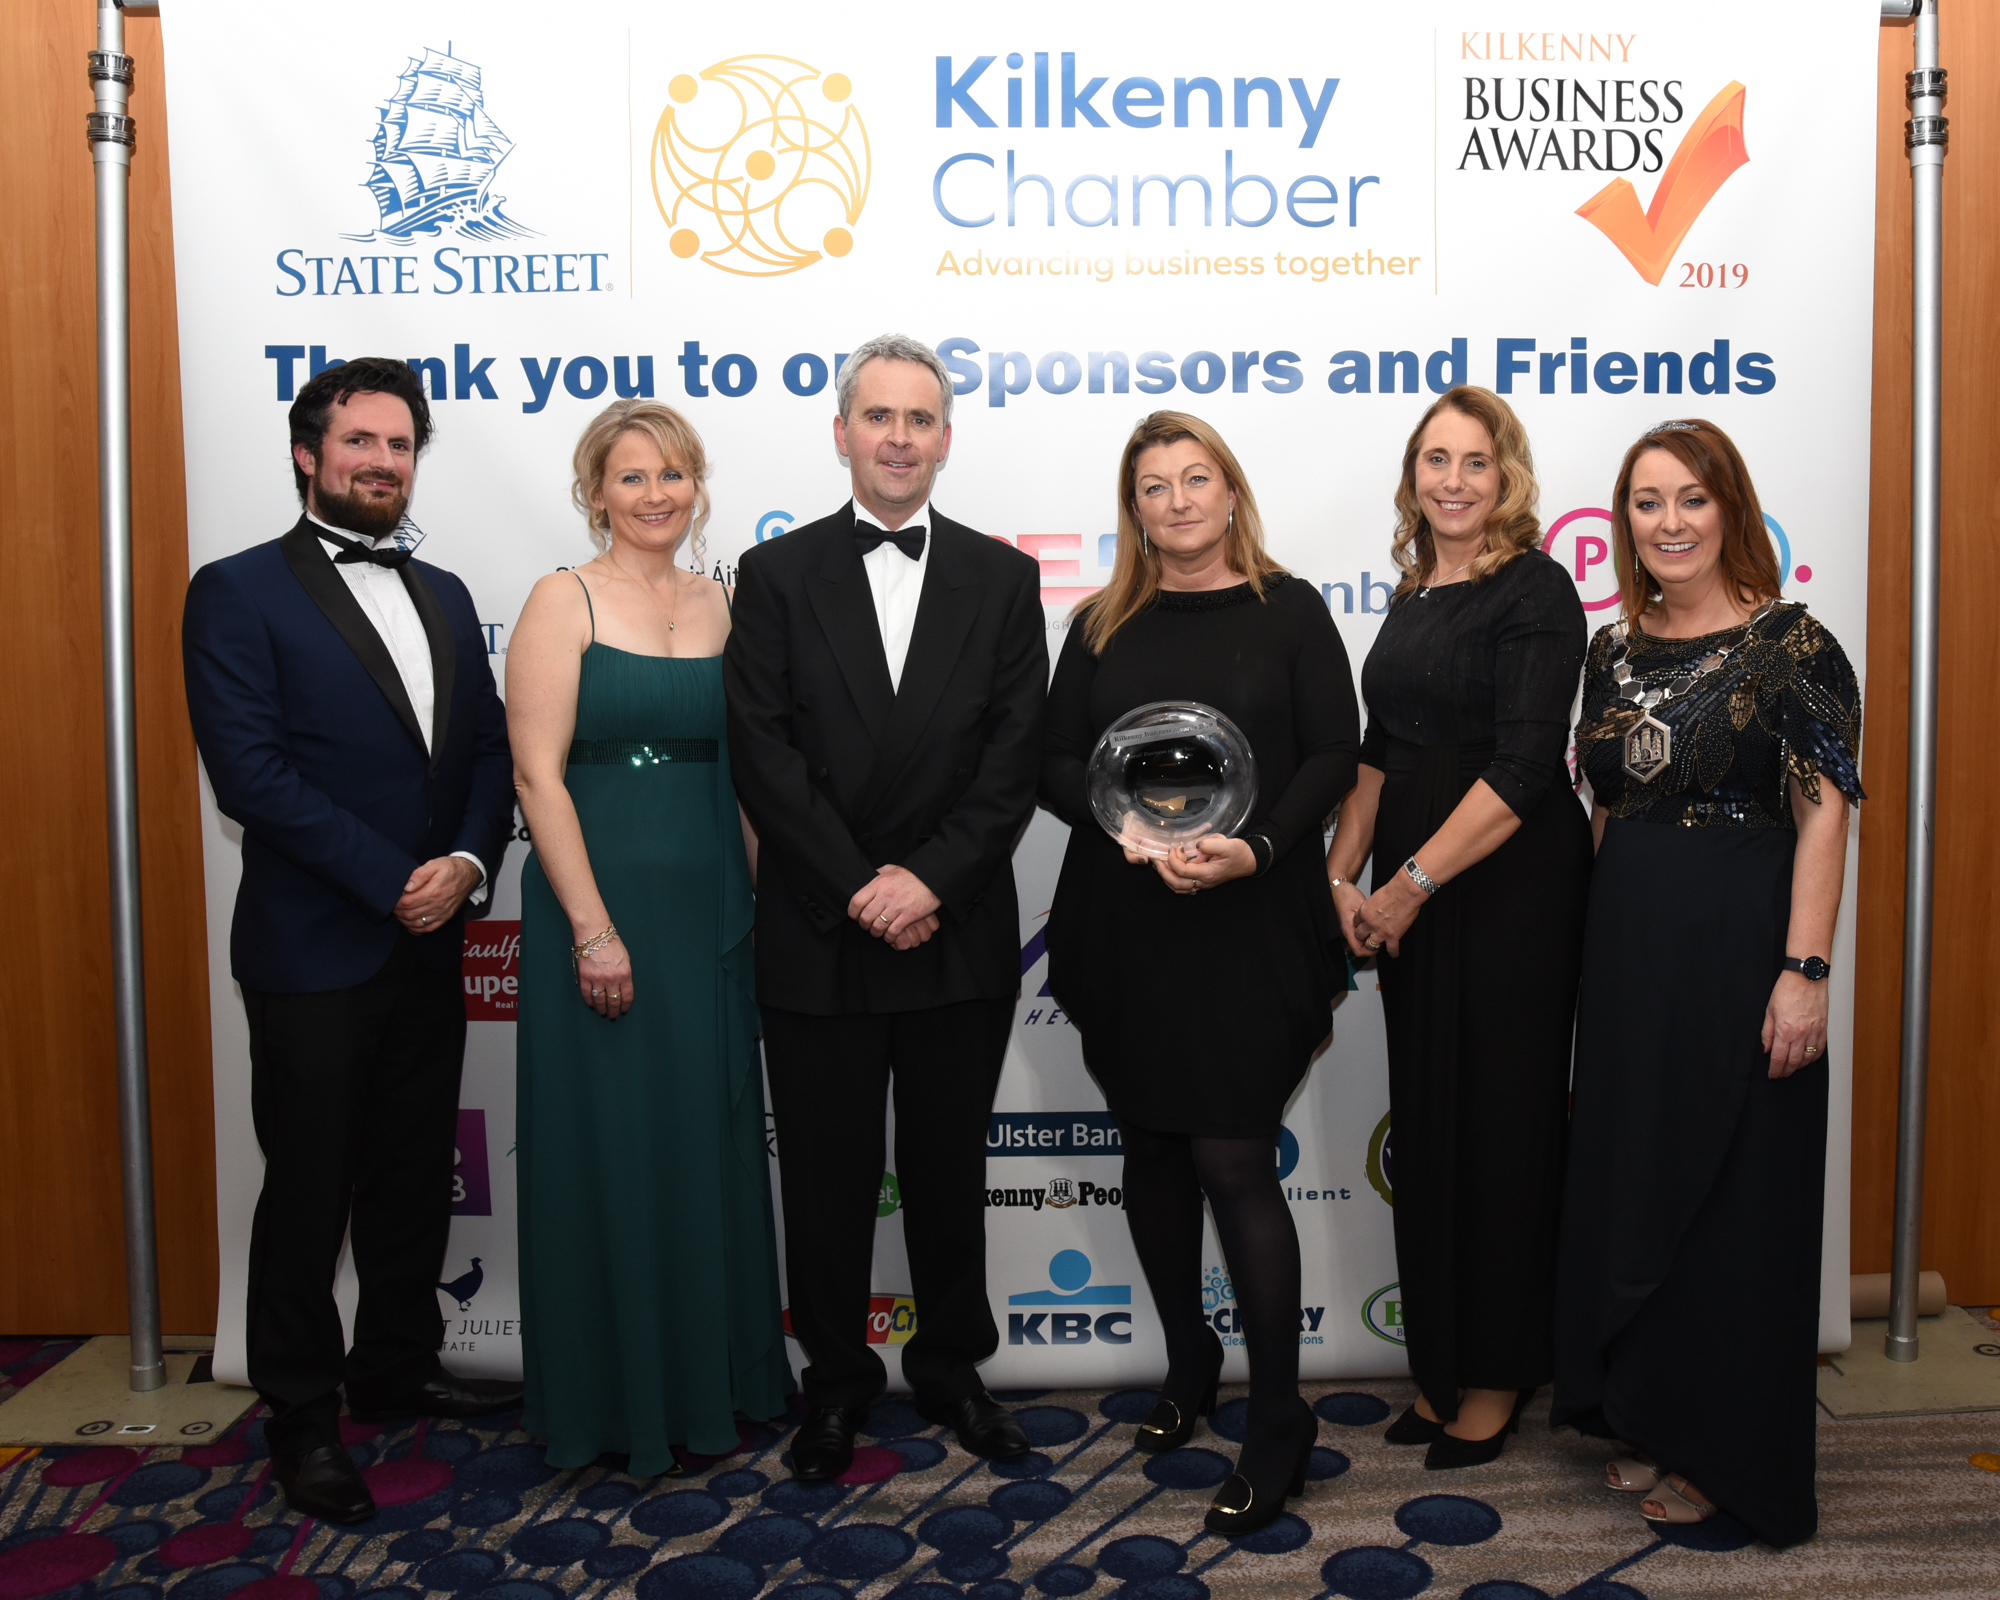 Kilkenny Chamber of Commerce | Advancing Business Together